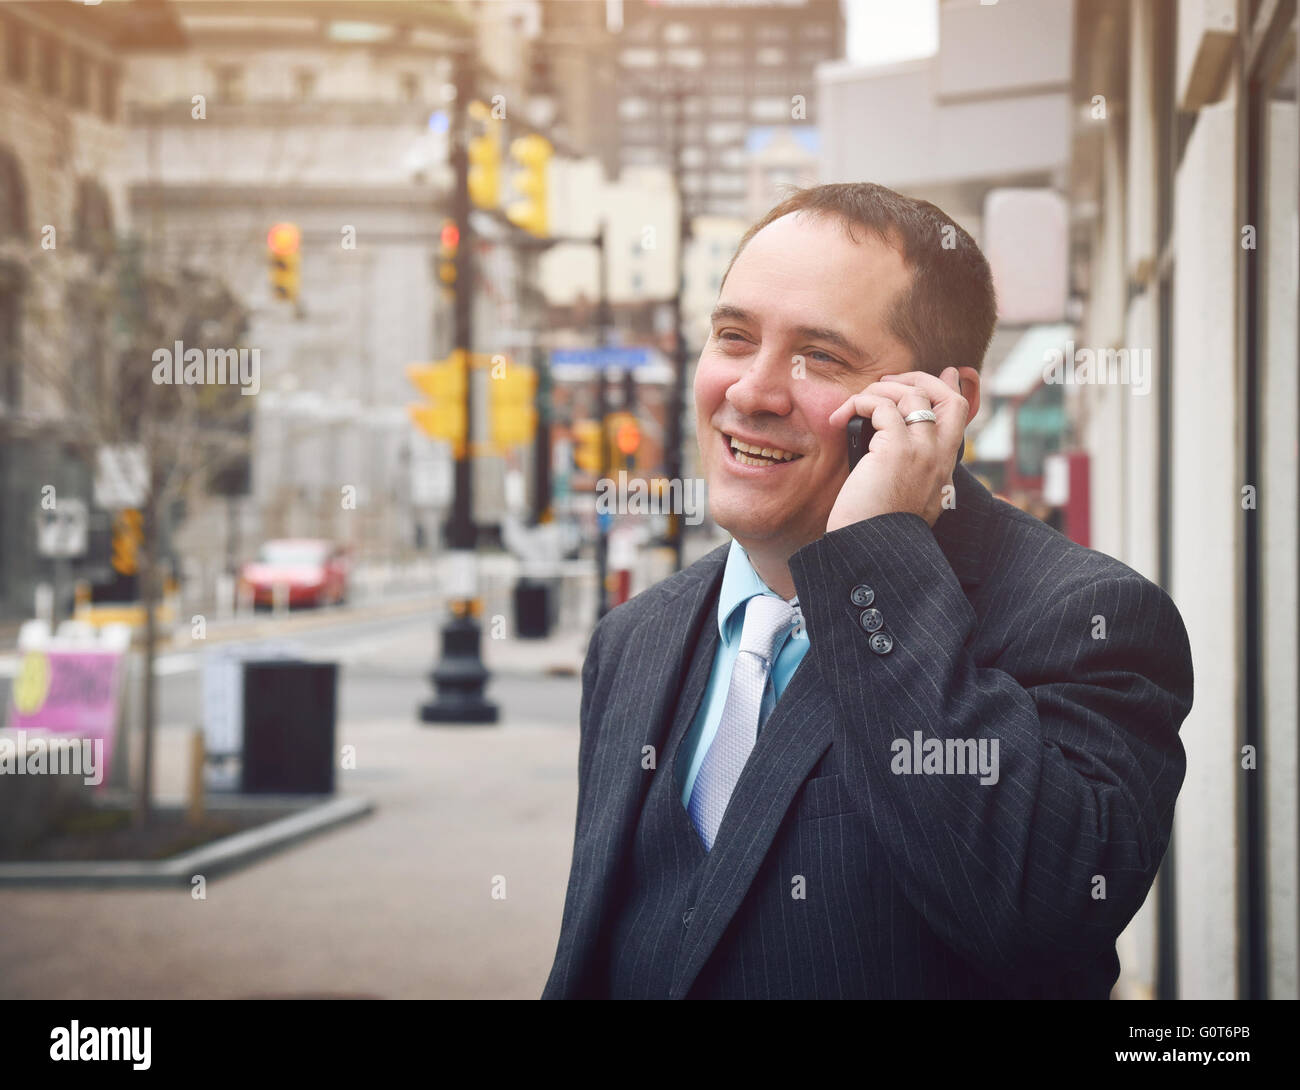 A business man is talking on a cell phone outside in a city wearing a suit and smiling for a success or communication - Stock Image